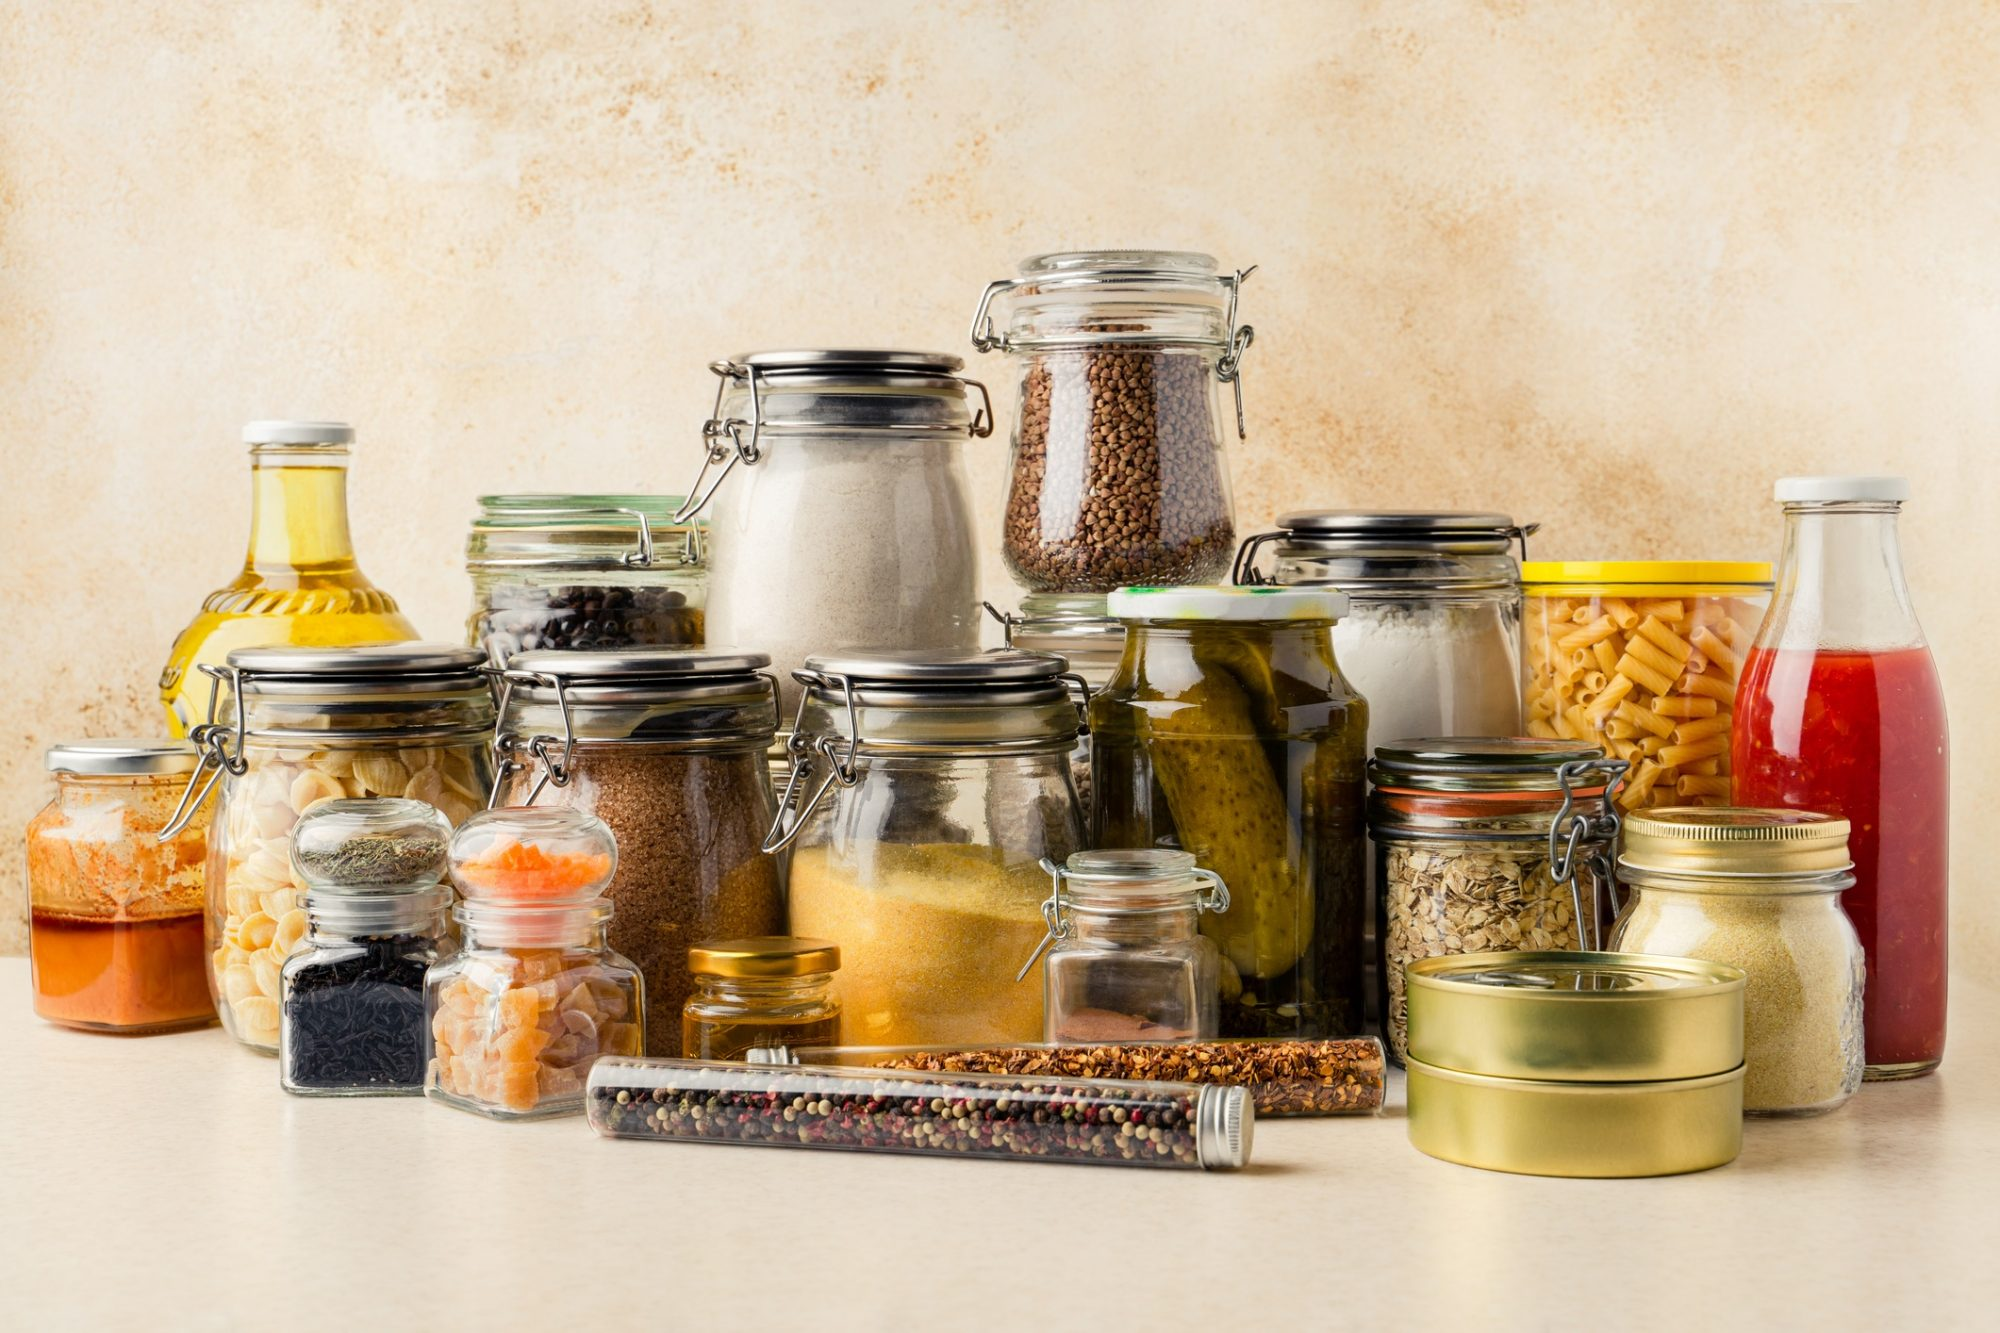 Various pantry ingredients including grains, condiments, tomato sauce, oil in glass containers, canned produce